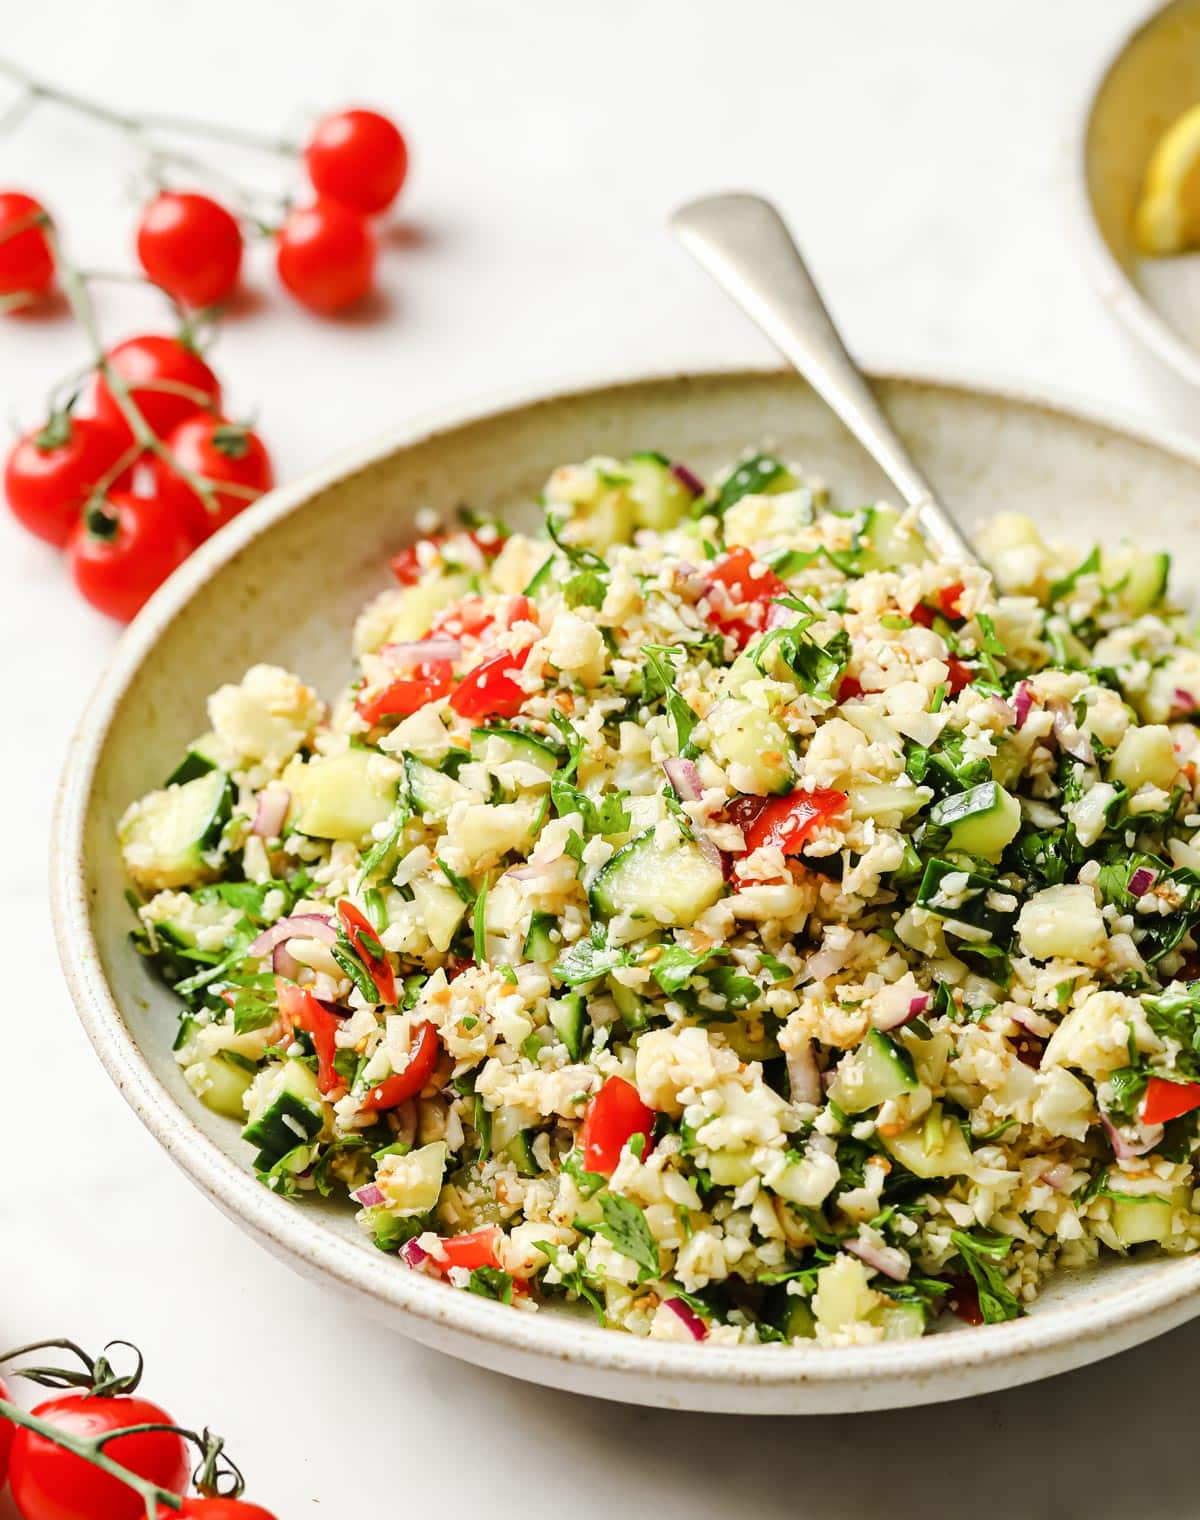 cauliflower tabbouleh in a bowl and tomatoes